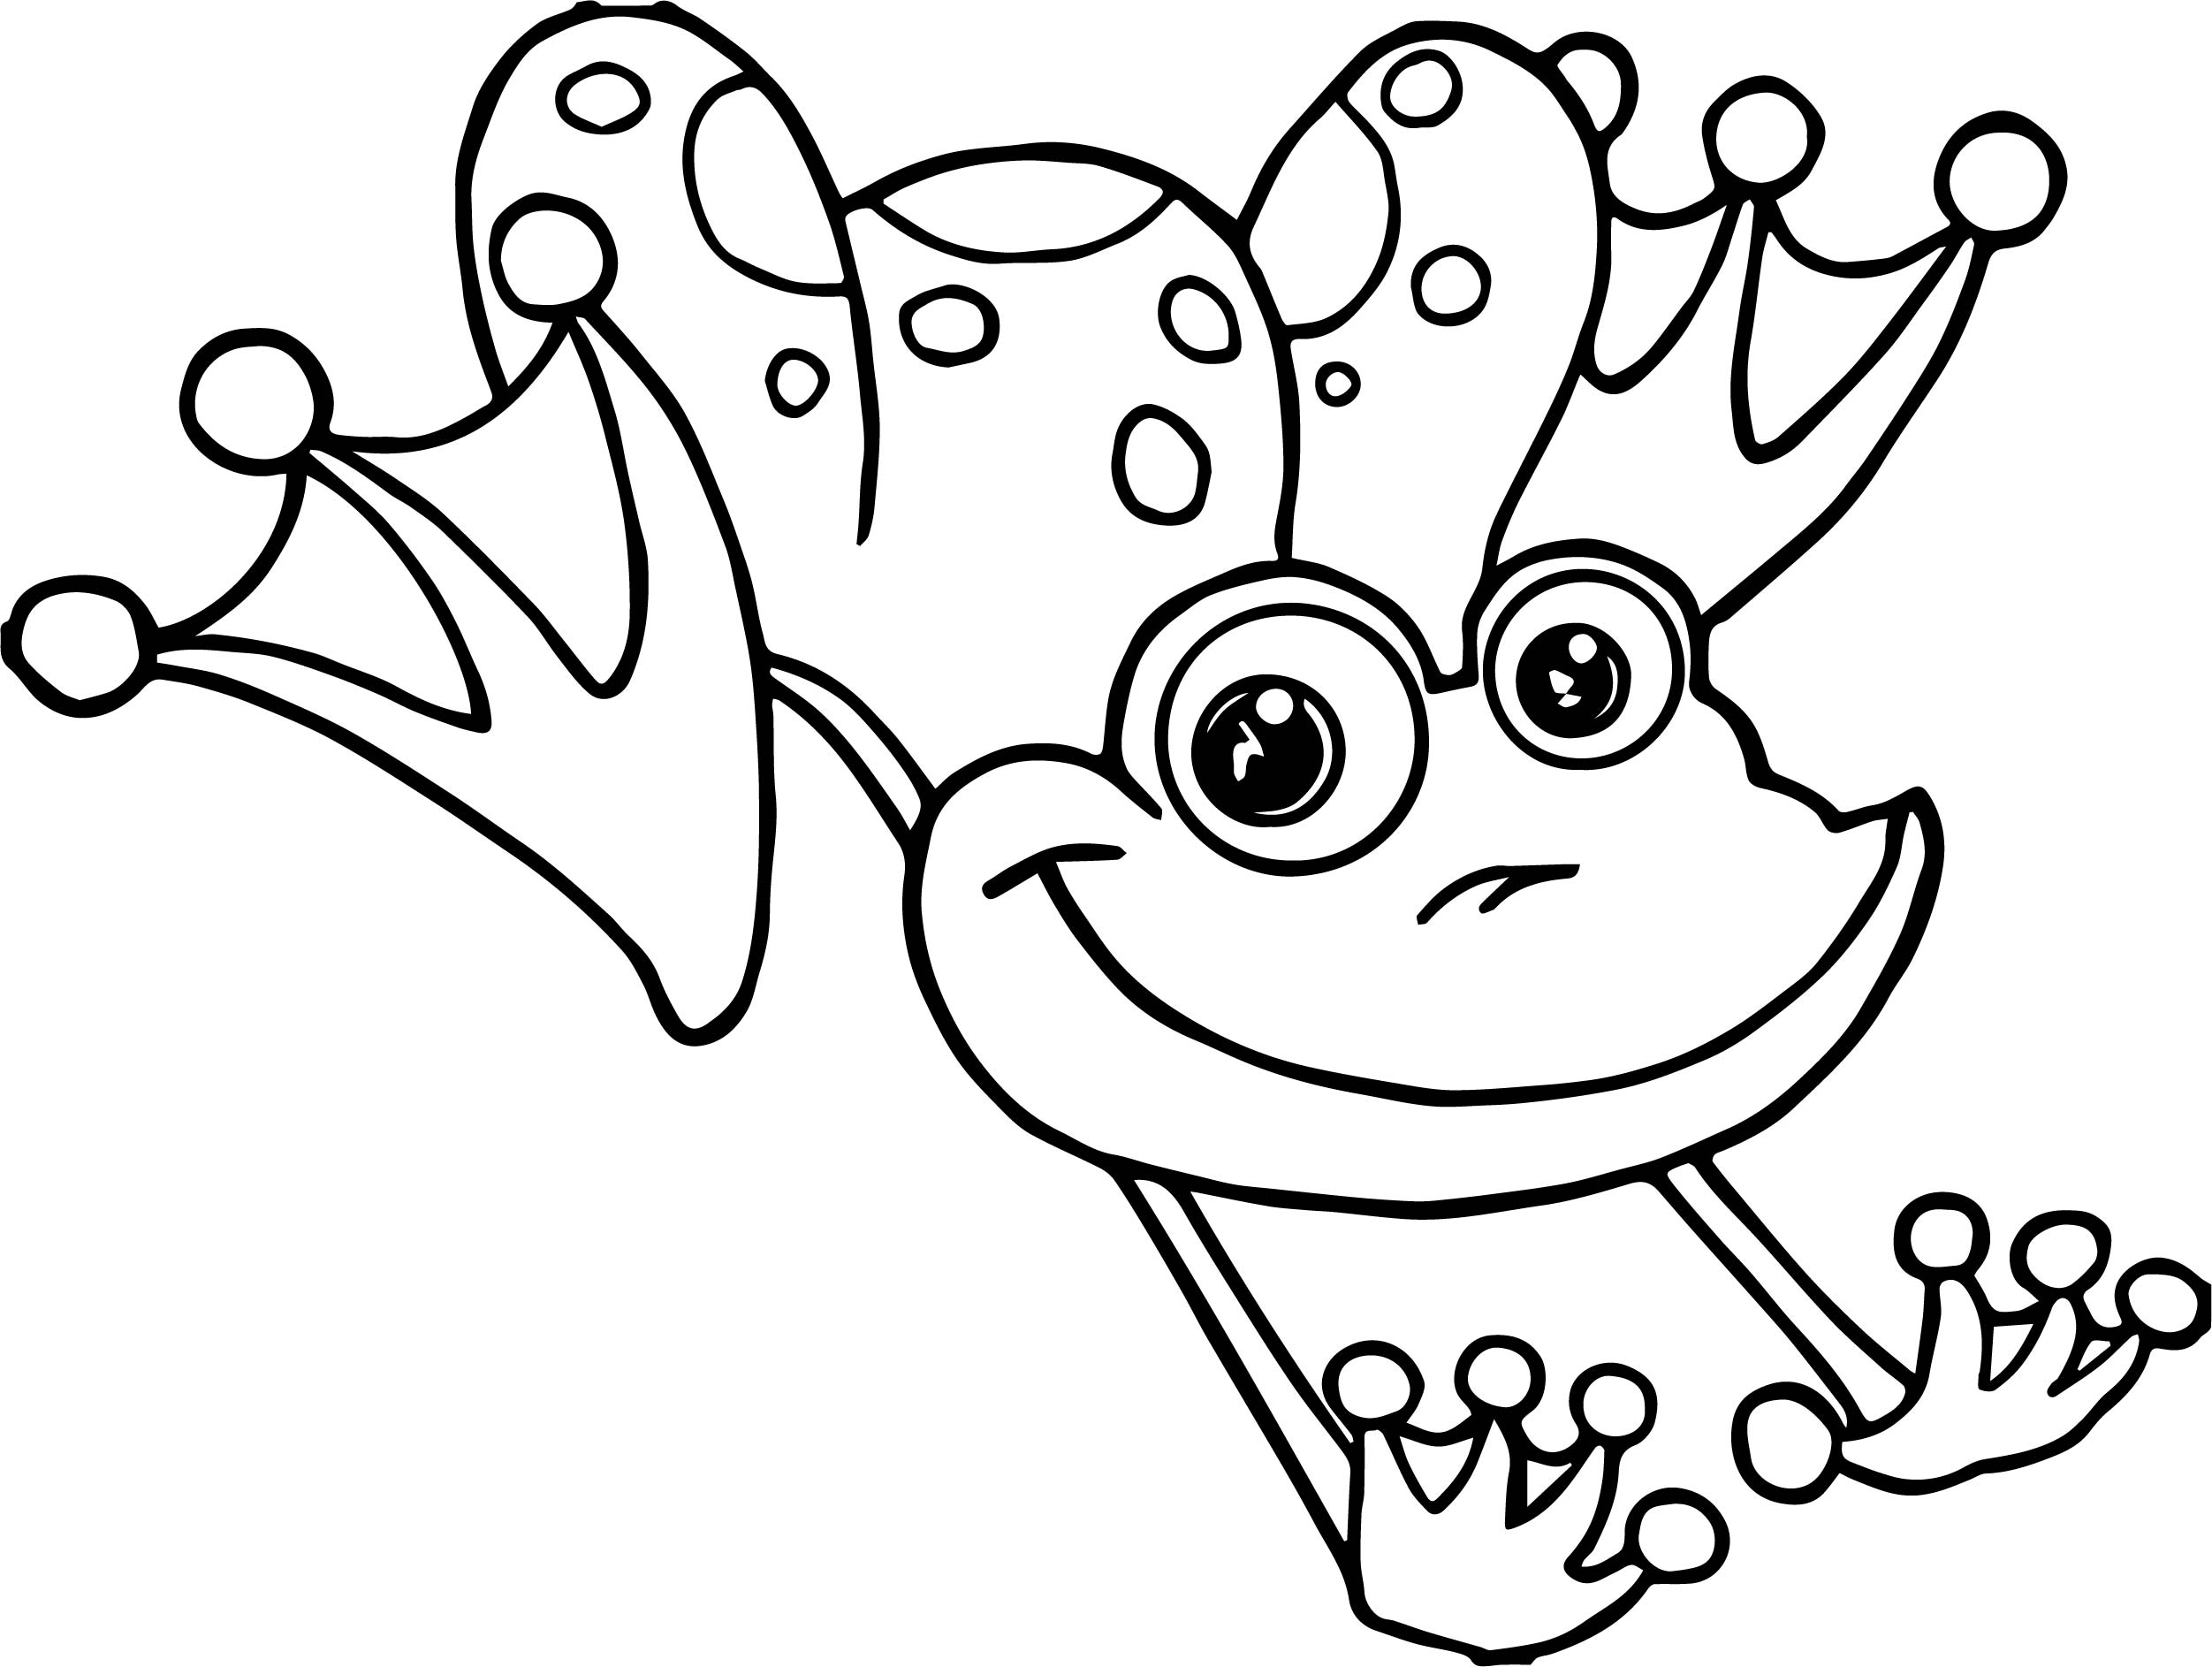 2503x1886 Jumping Frog Coloring Pages Throughout Jumper Page Keysub Frog